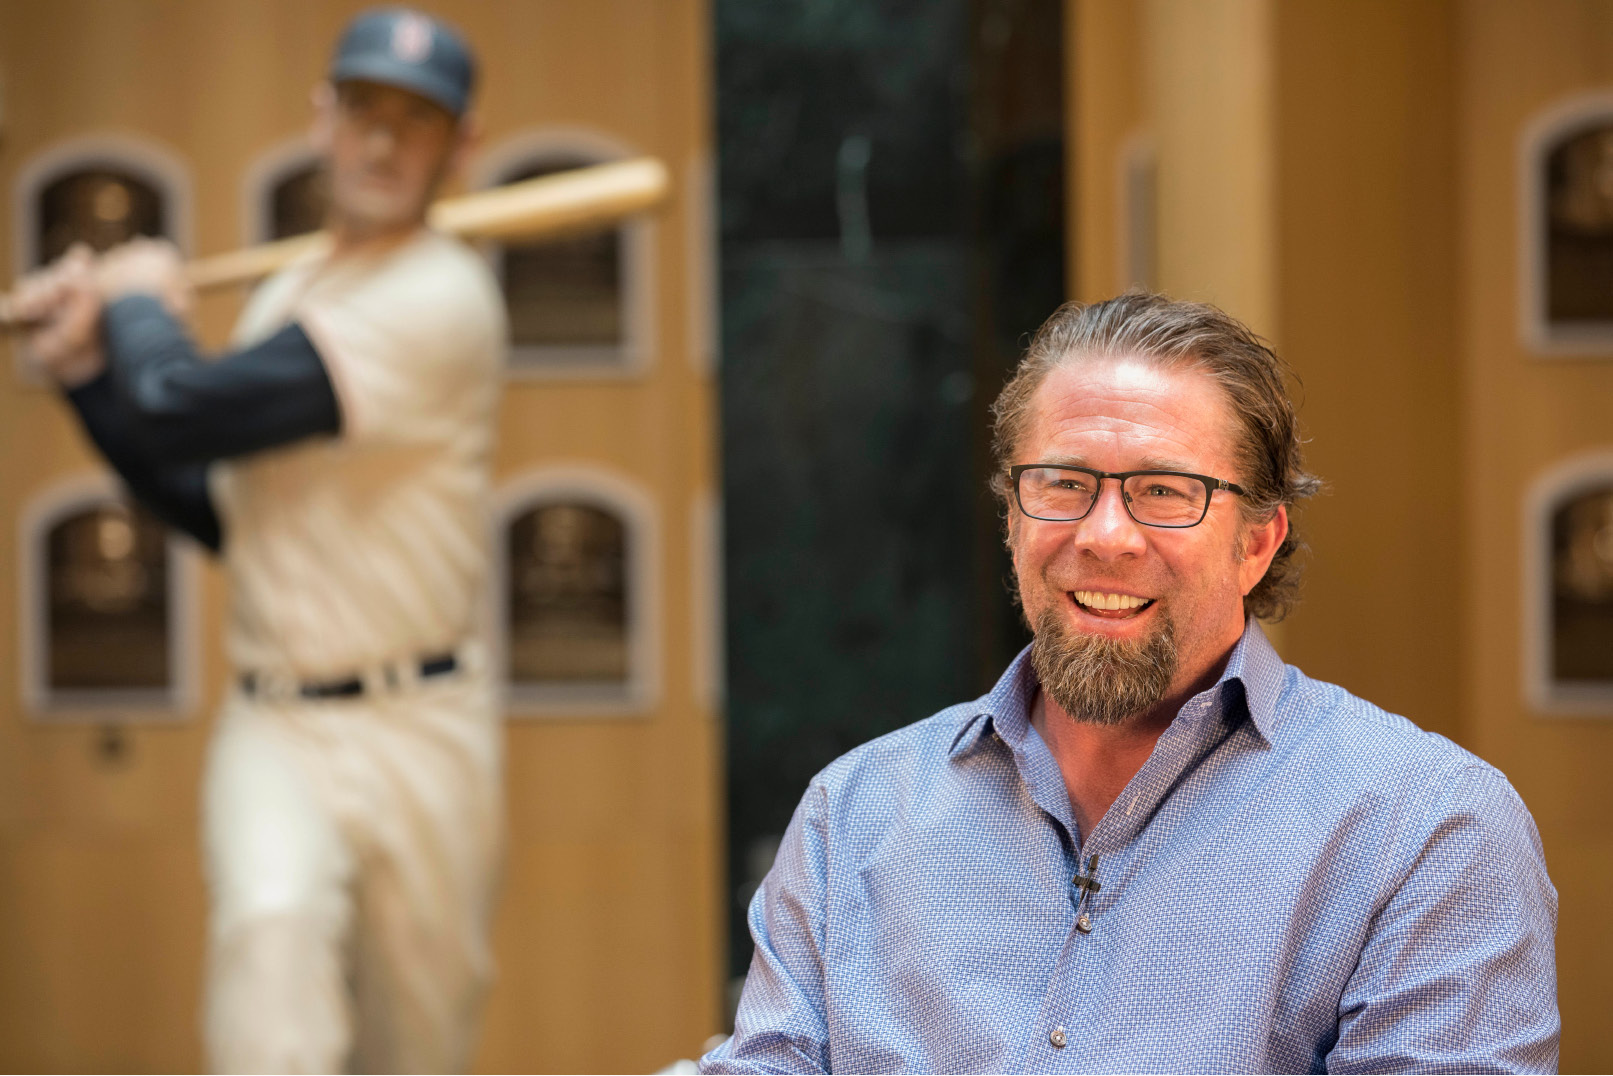 In this photo provided by the National Baseball Hall of Fame and Museum, Jeff Bagwell tours the National Baseball Hall of Fame and Museum in Cooperstown, N.Y., Tuesday, March 28, 2017. Bagwell will be inducted into the Baseball Hall of Fame in July 2017. (Milo Stewart Jr./National Baseball Hall of Fame via AP)